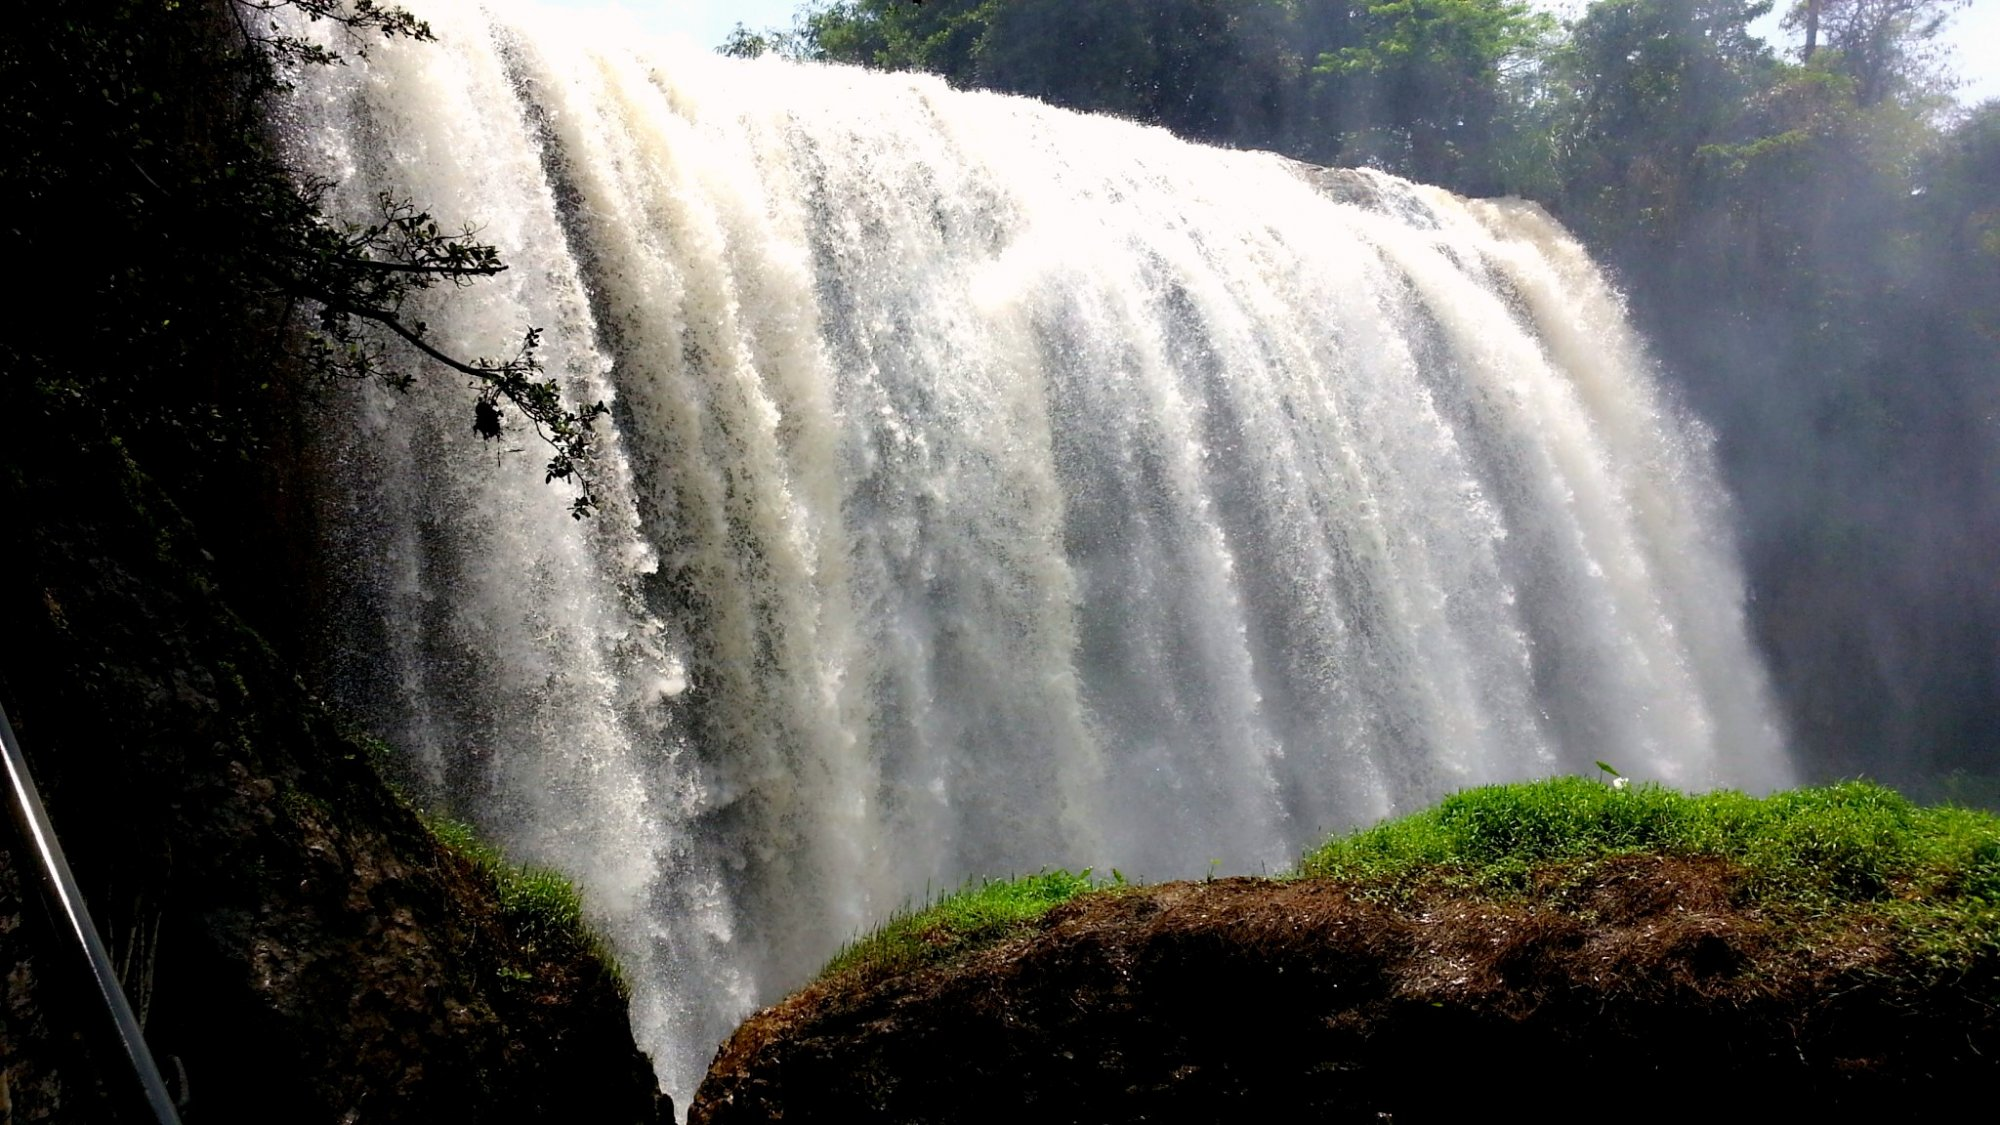 Private Car Rental With Diver For Dalat Tour 2 Days includes Waterfall